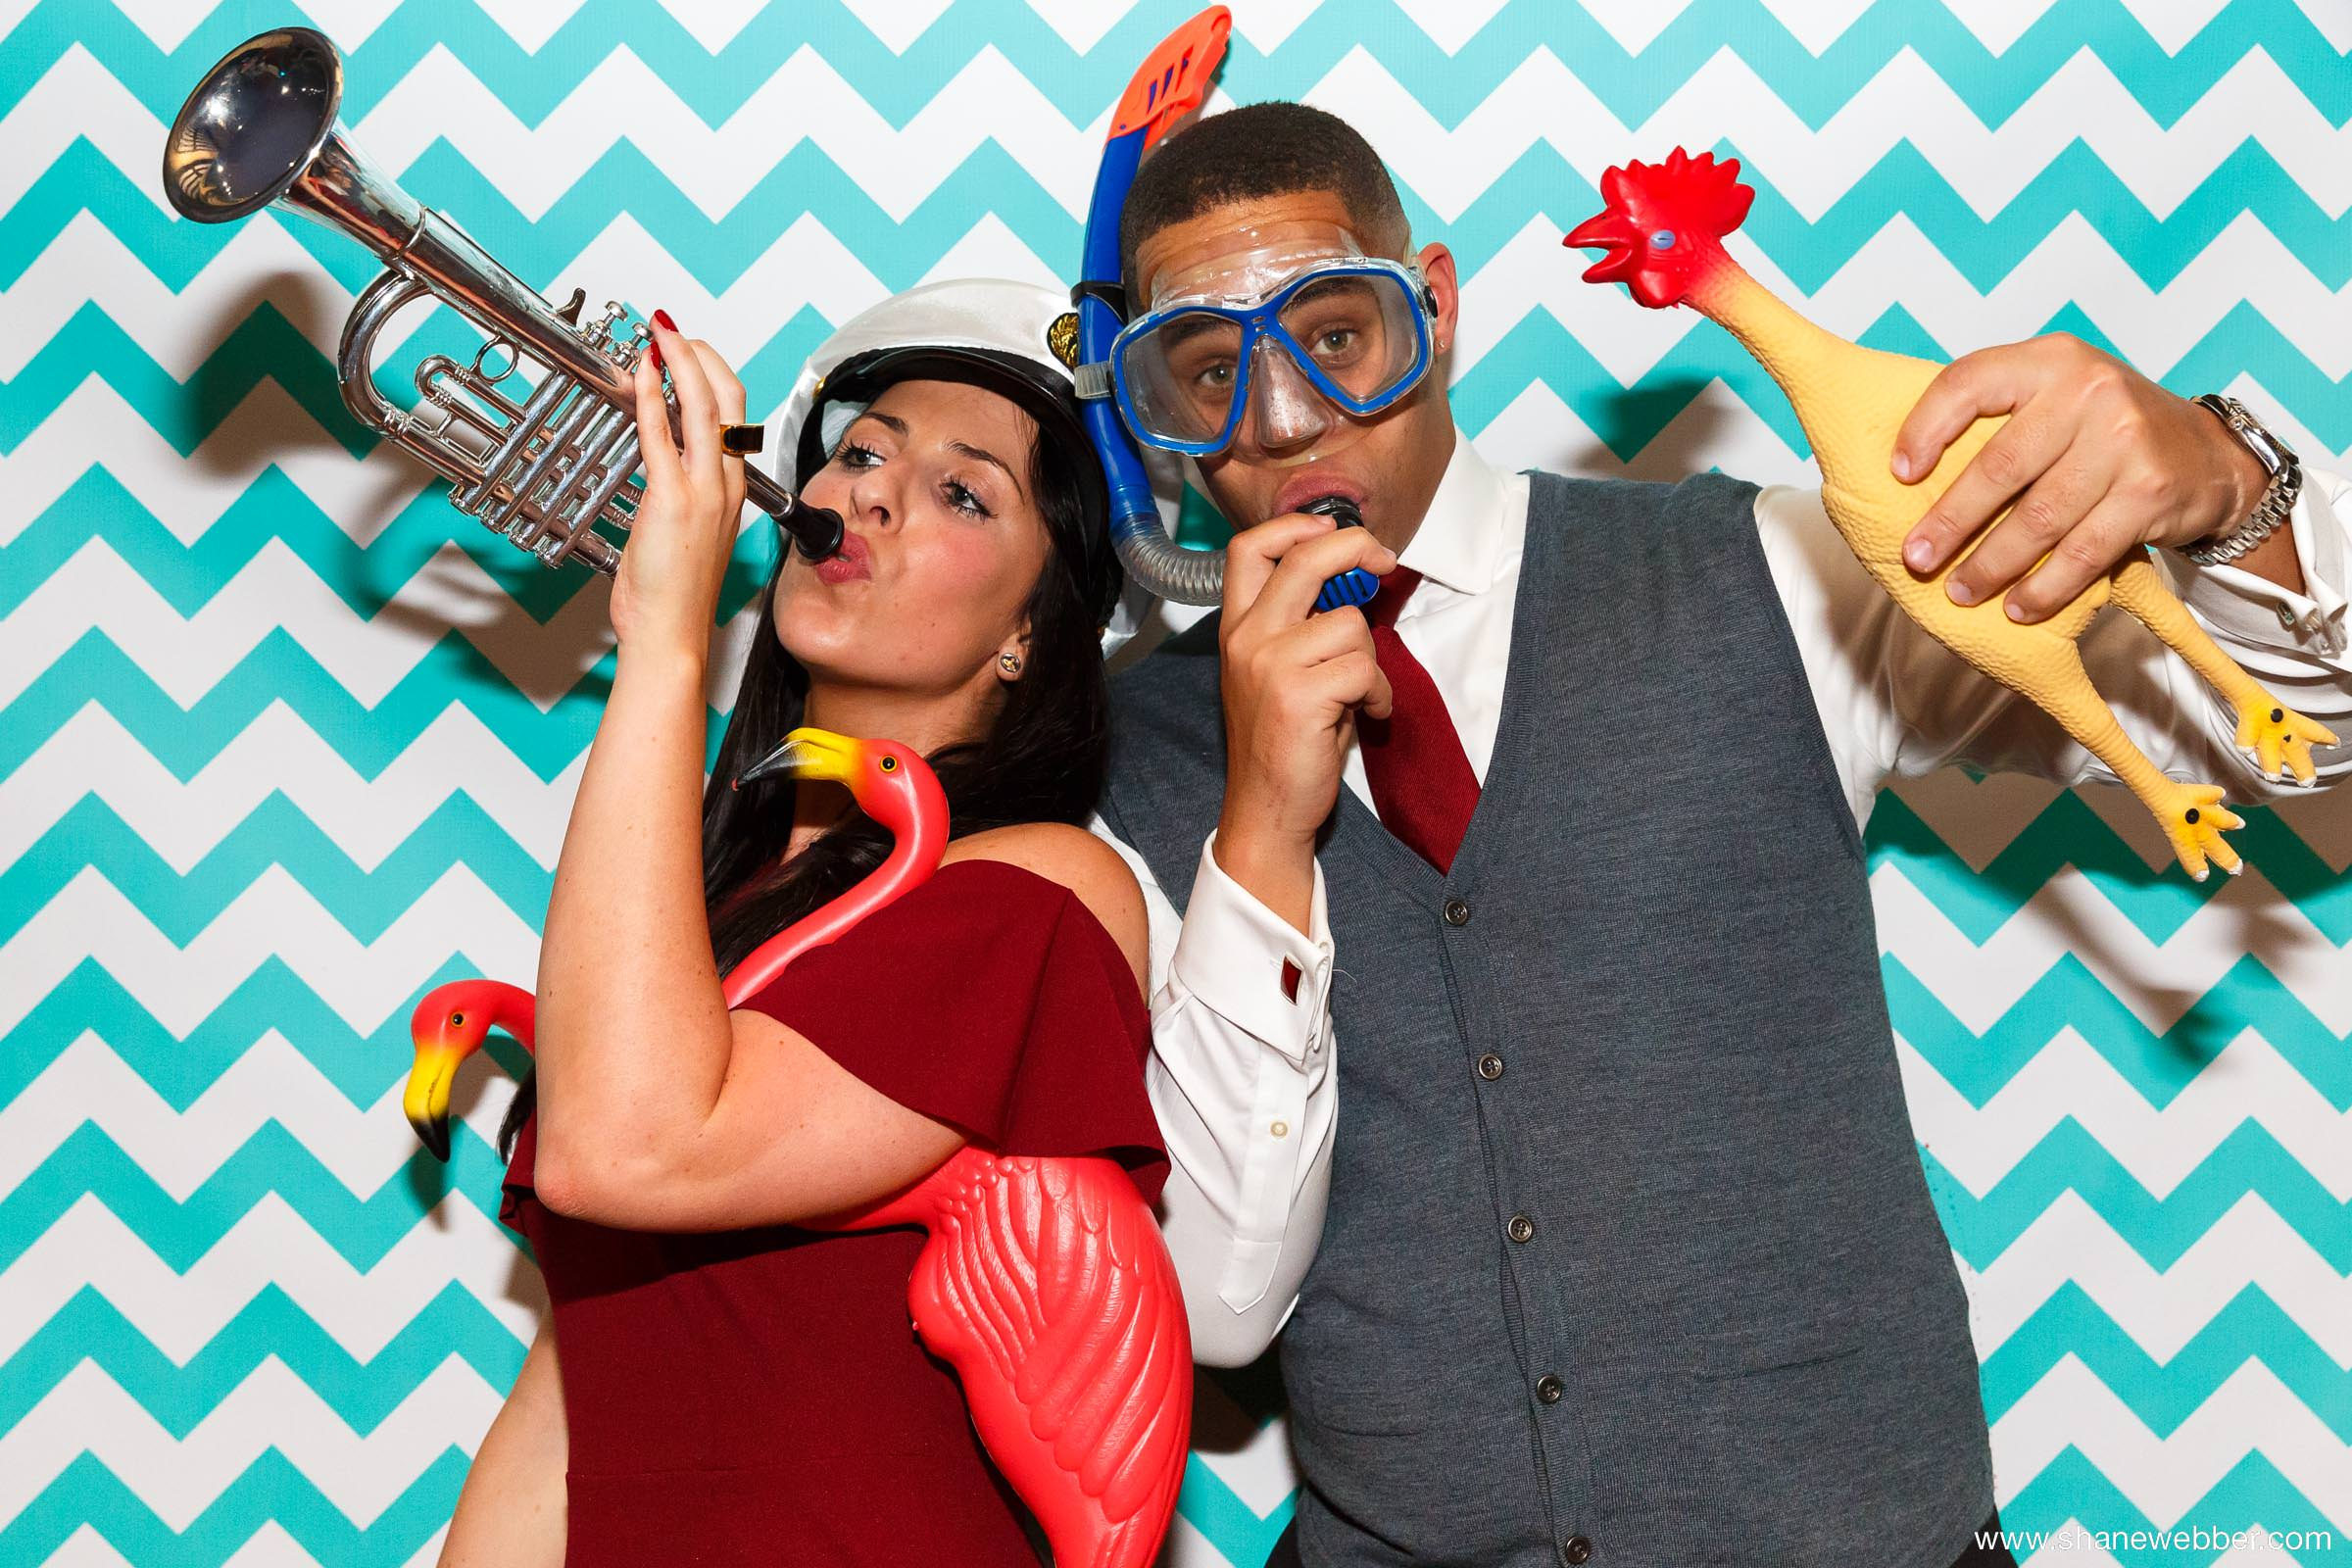 Funny photobooth at wedding